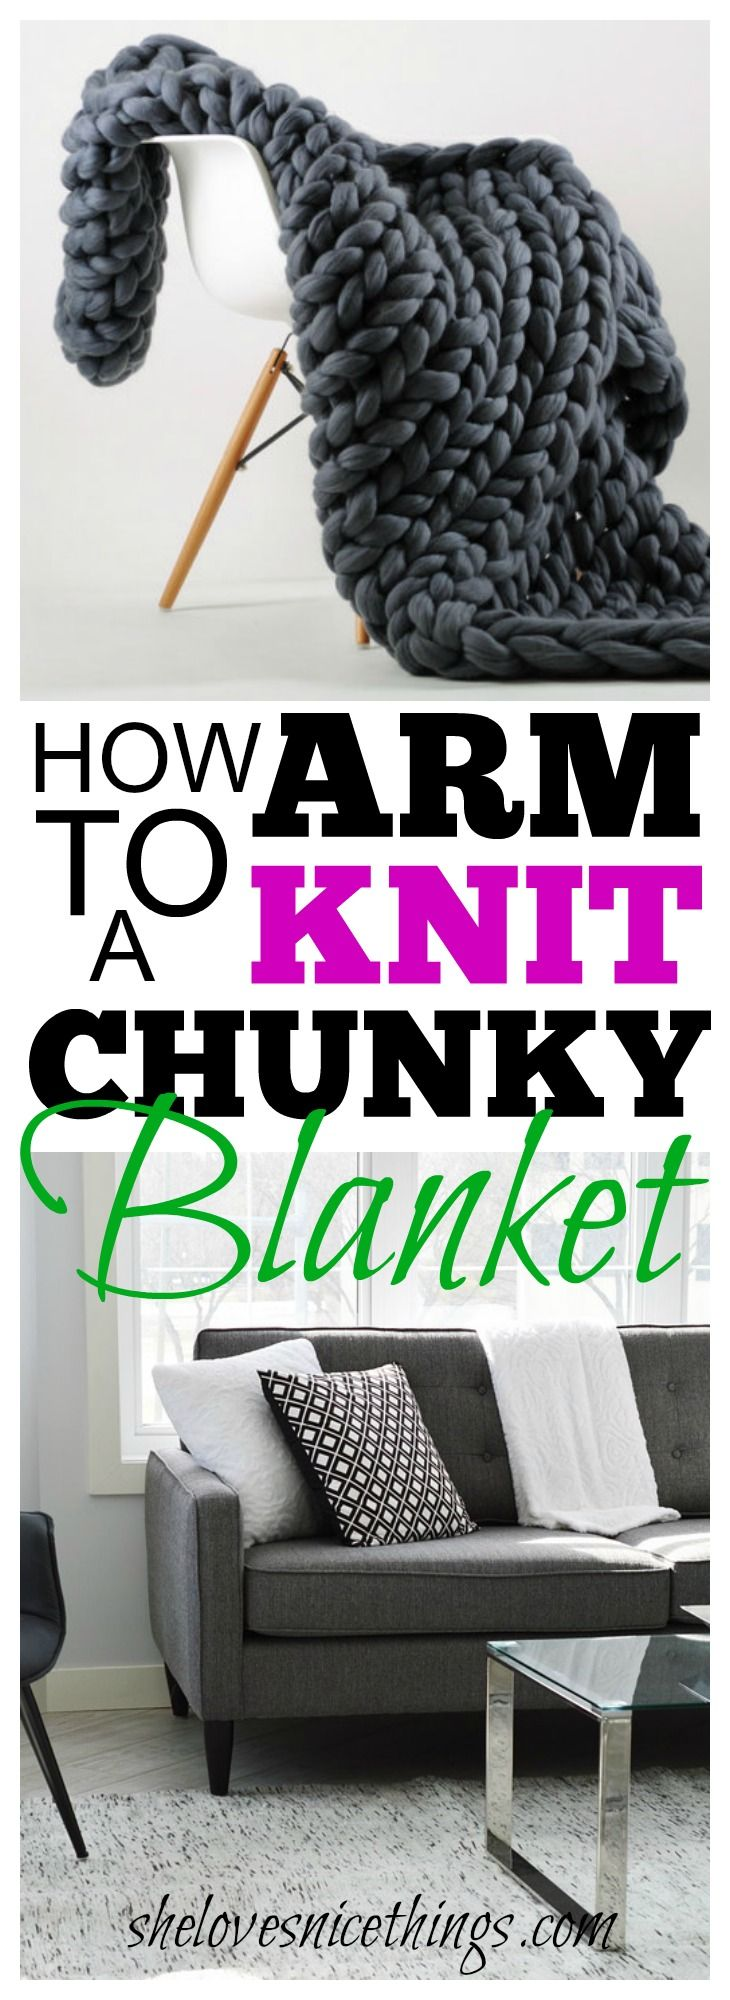 These #blankets very often retail for upwards of $200. Making your very own is super quick and super easy! #lifestyle #diyhomedecor #homedecor #homedecorideas